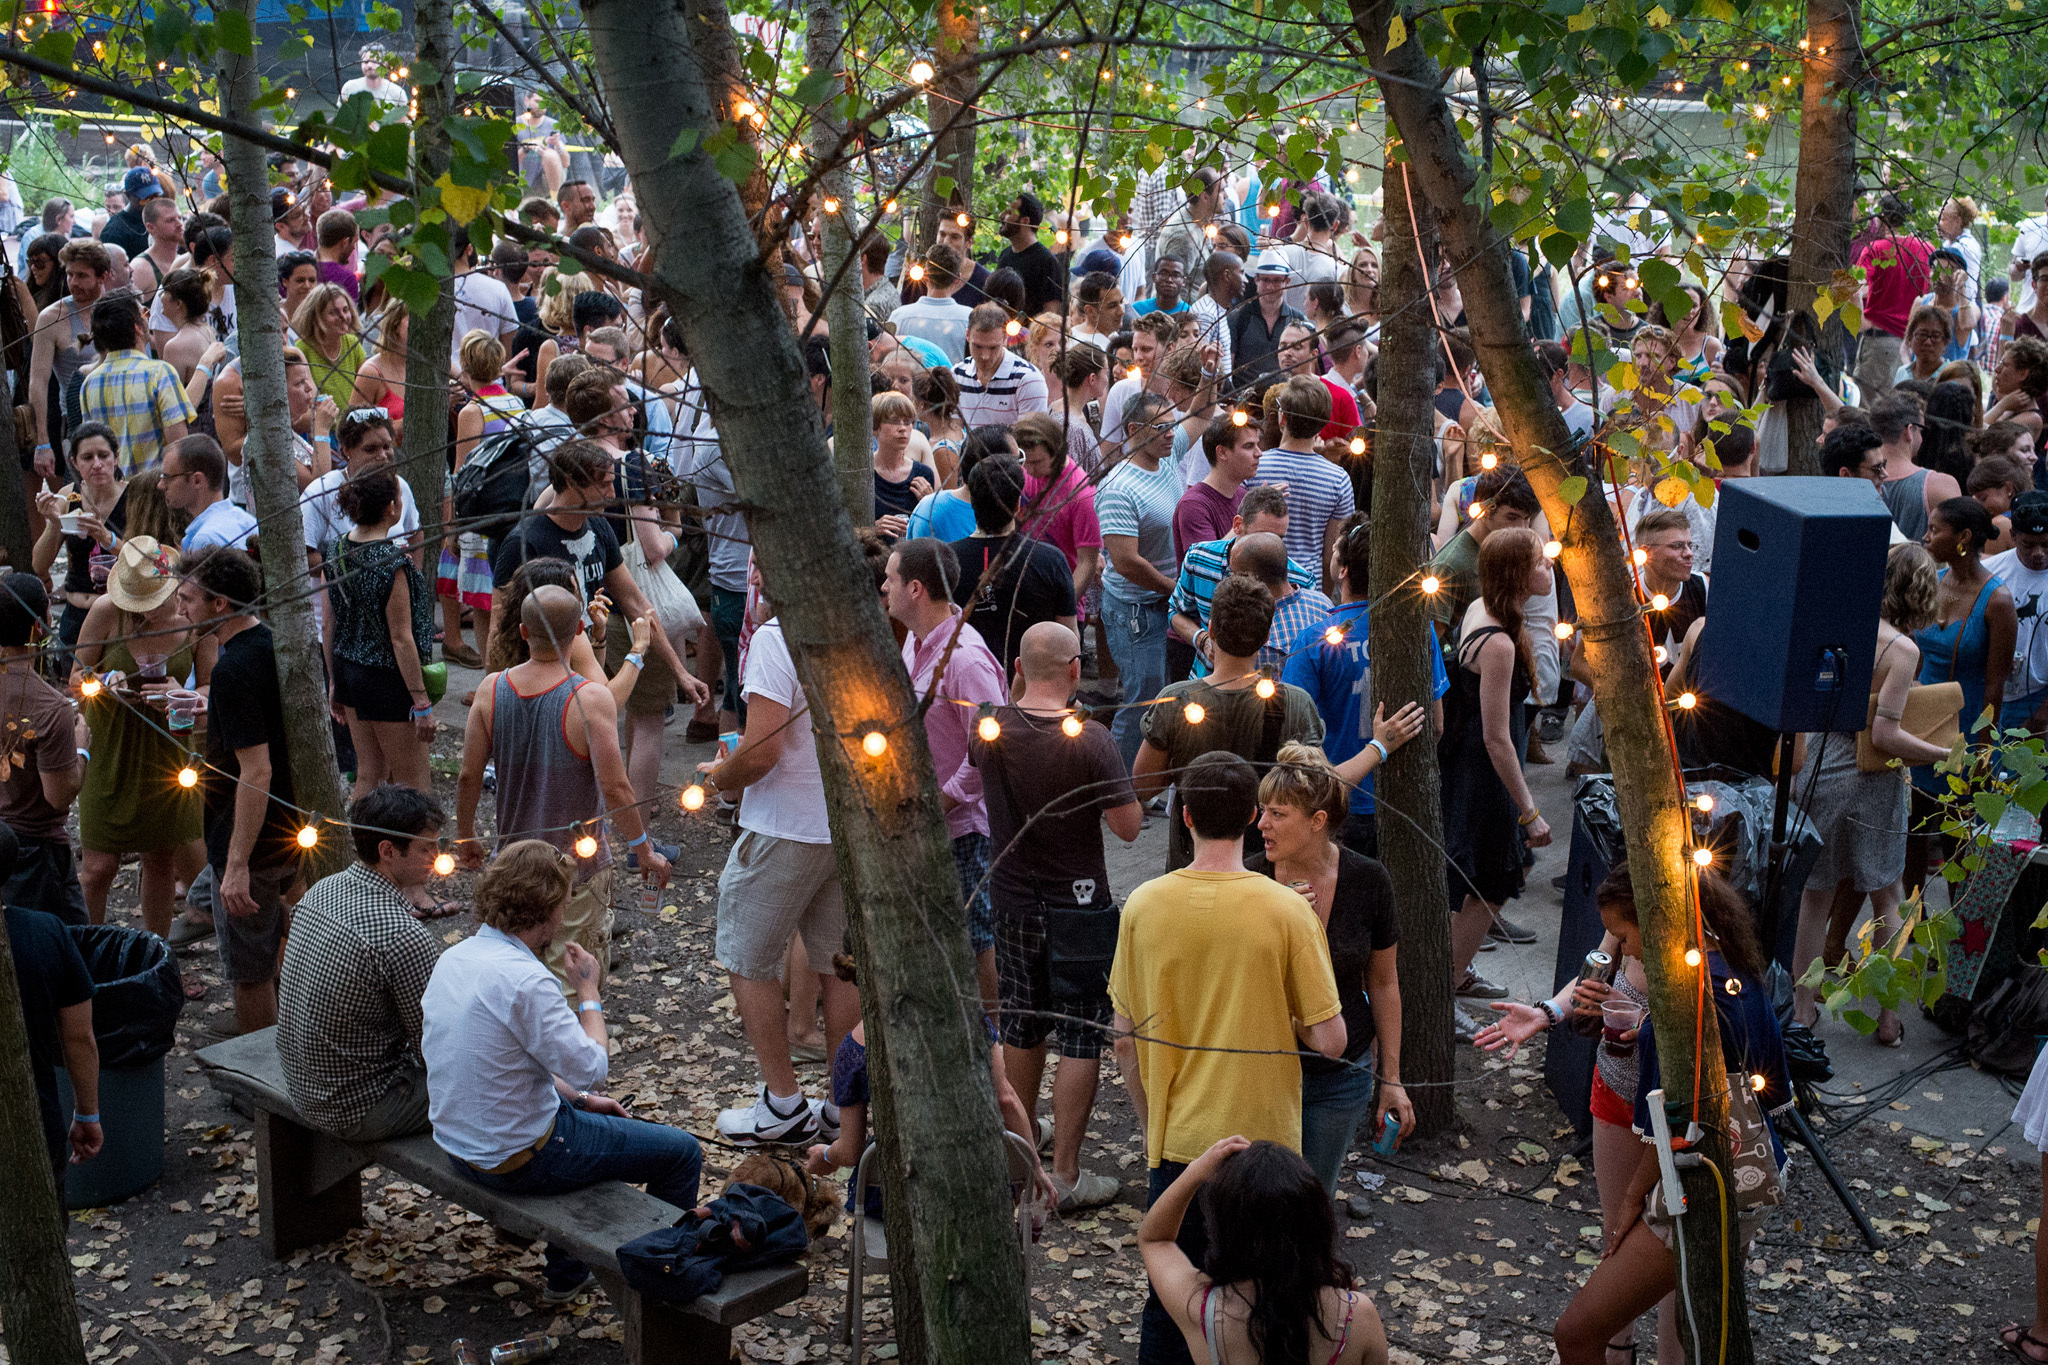 Spend a summer Sunday dancing in Gowanus Grove for one last season